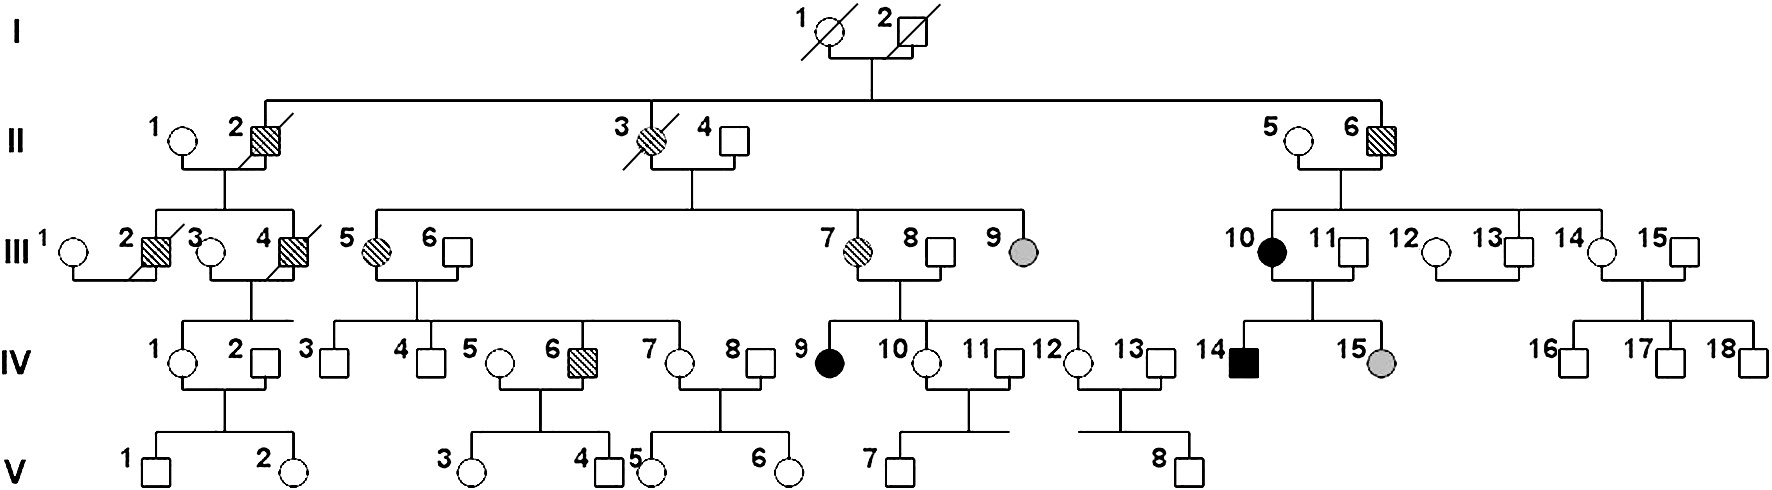 N88s mutation in the bscl2 gene in a serbian family with Hereditary motor neuropathy